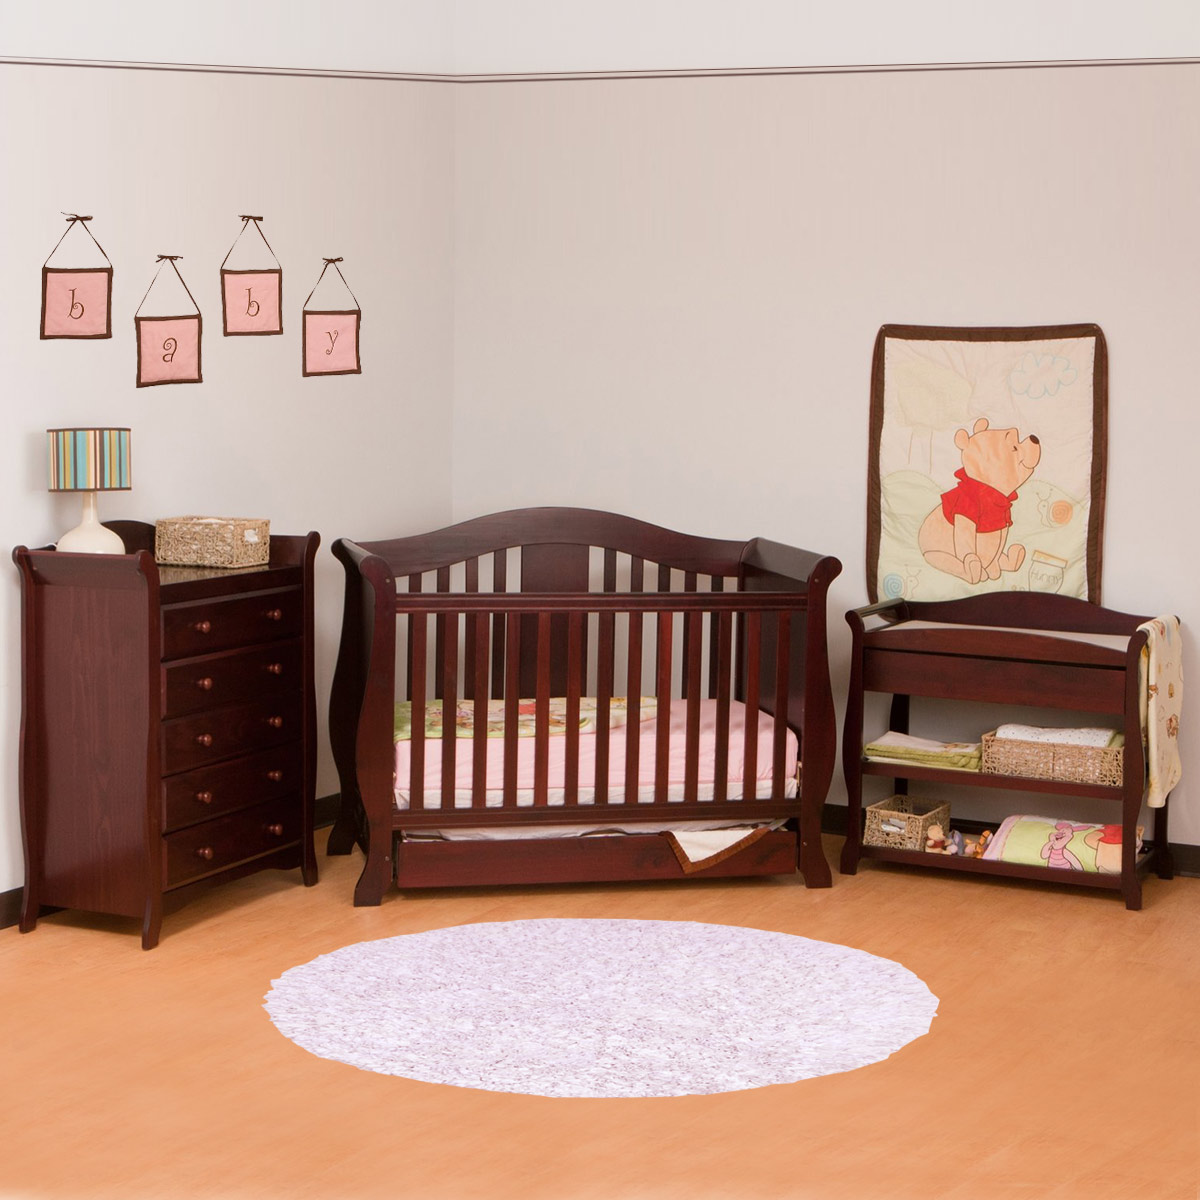 Captivating Storkcraft 3 Piece Nursery Set   Vittoria Convertible Crib, Aspen Changing  Table And Avalon 5 Drawer Dresser In Espresso FREE SHIPPING